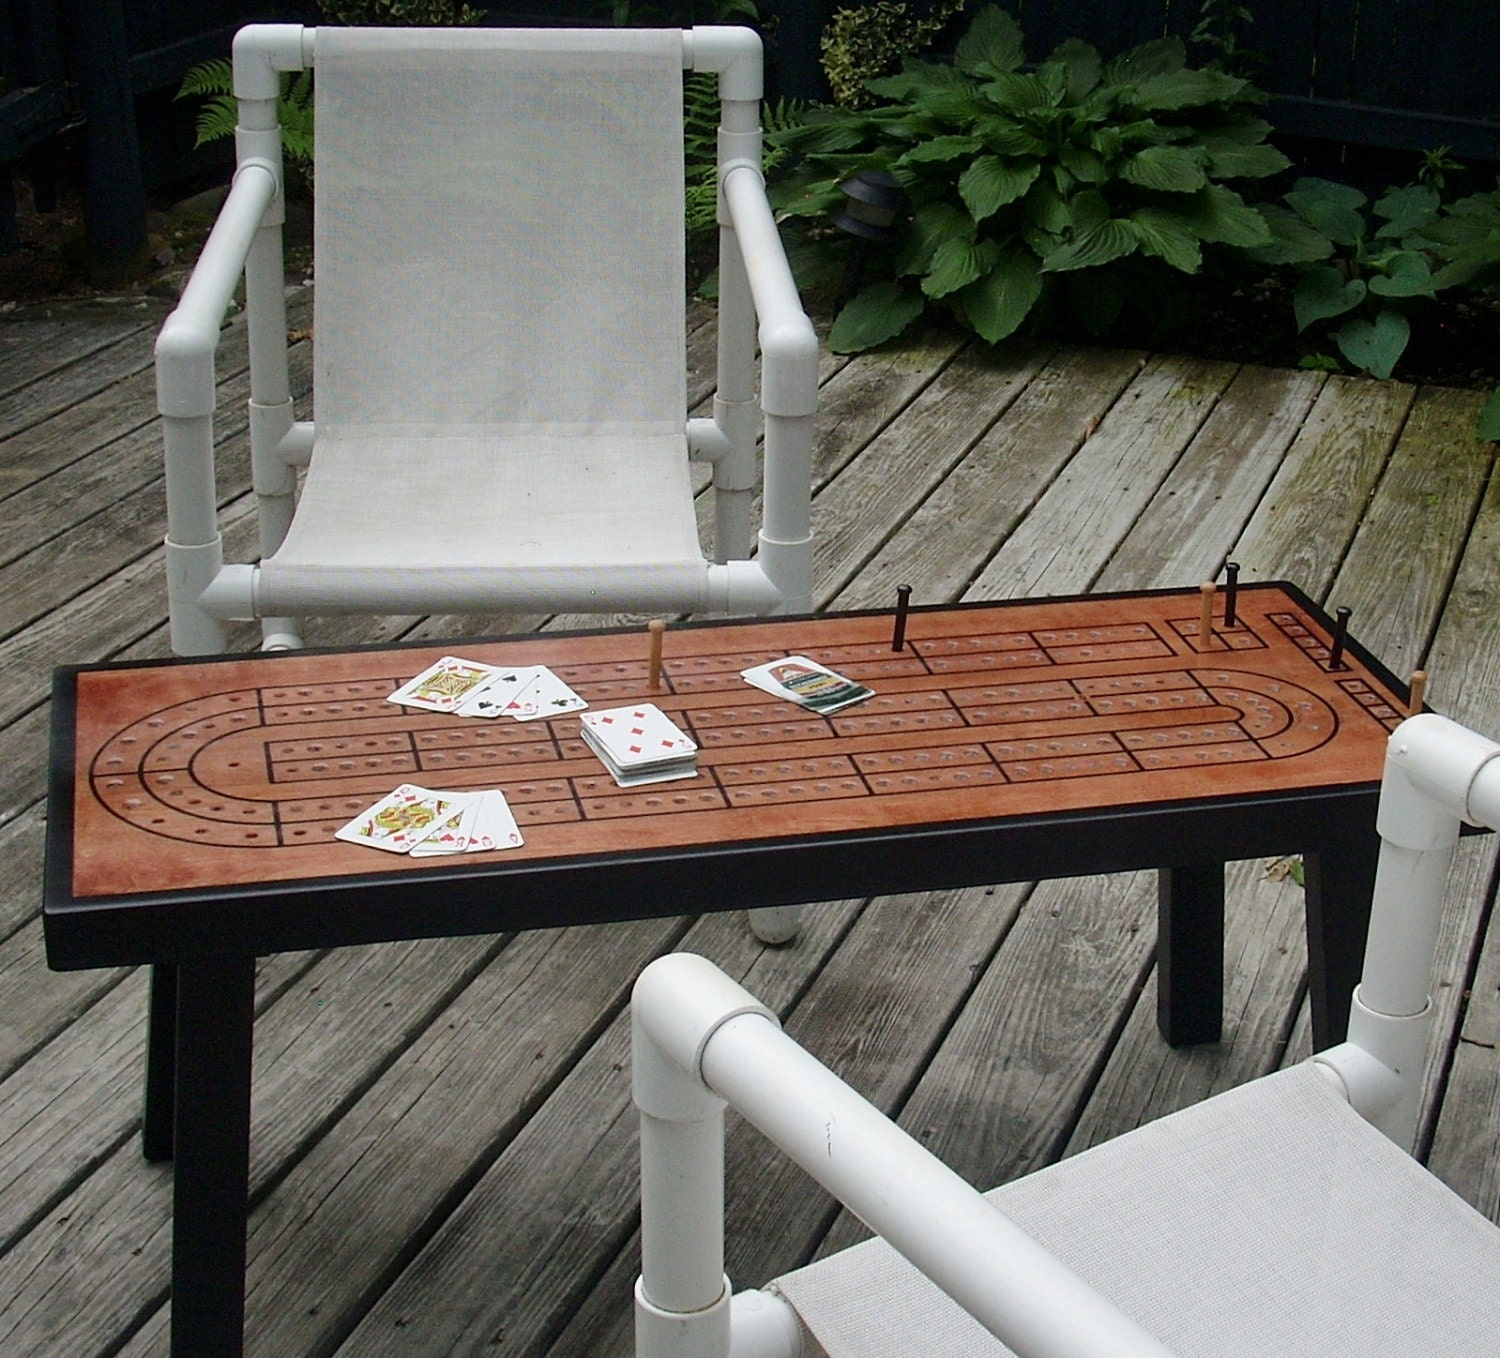 Crib boards for sale uk - Cribbage Table Cribbage Board Red Chestnut Minwax With Black Border Gift For Dad Man Cave Cribbage Game Table